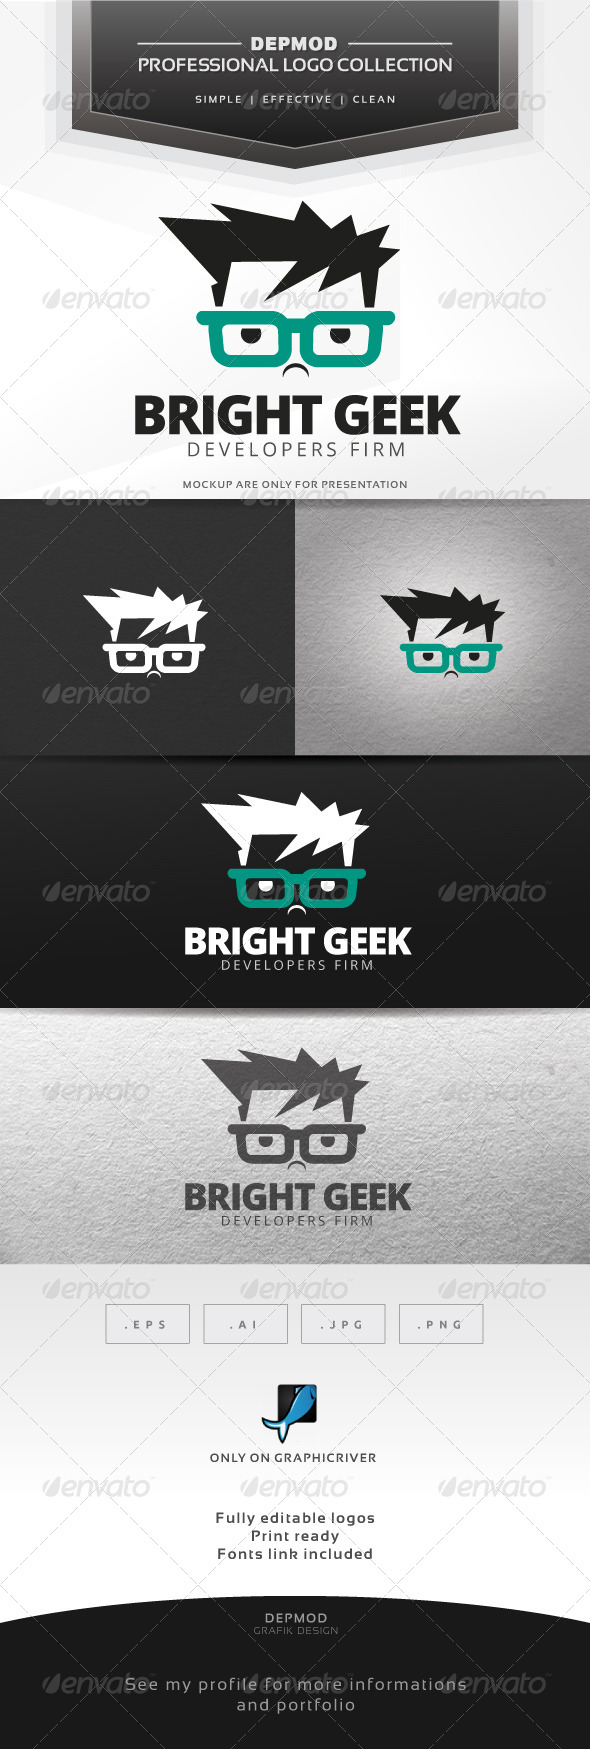 GraphicRiver Bright Geek Logo 7675441